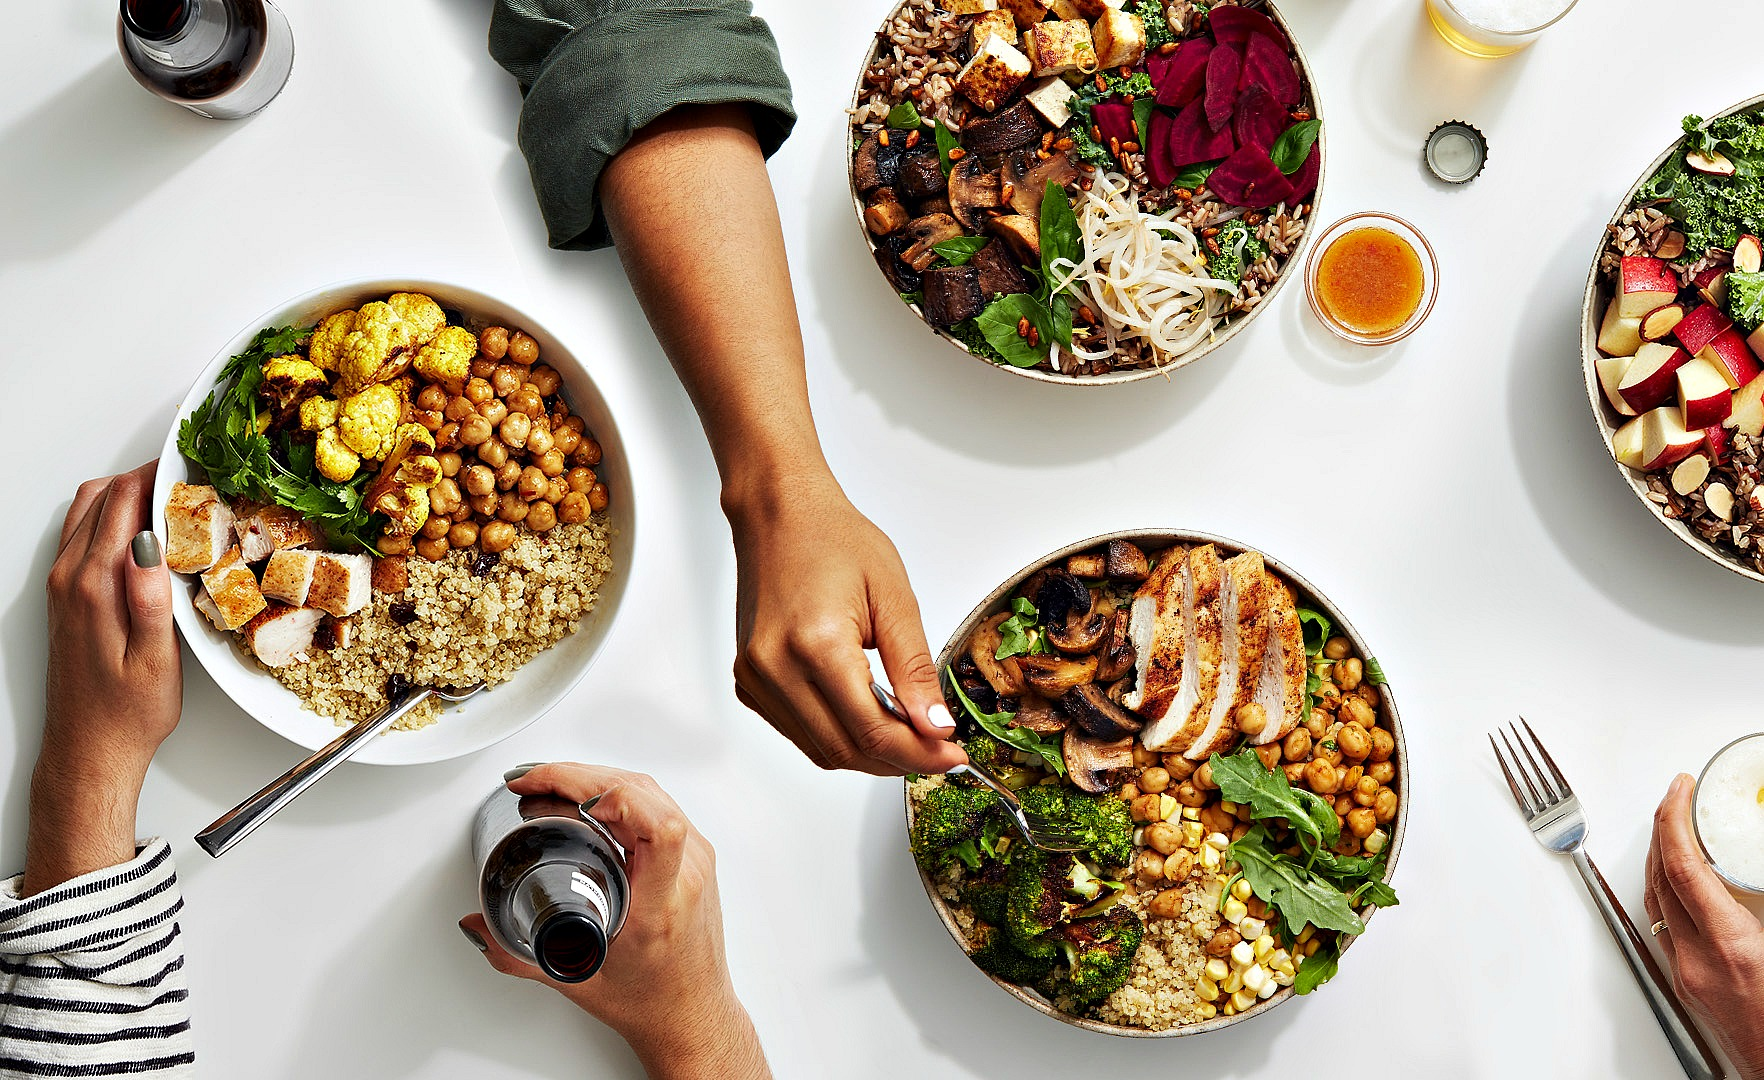 The sweetgreen promo code good for $3 off sweetgreen